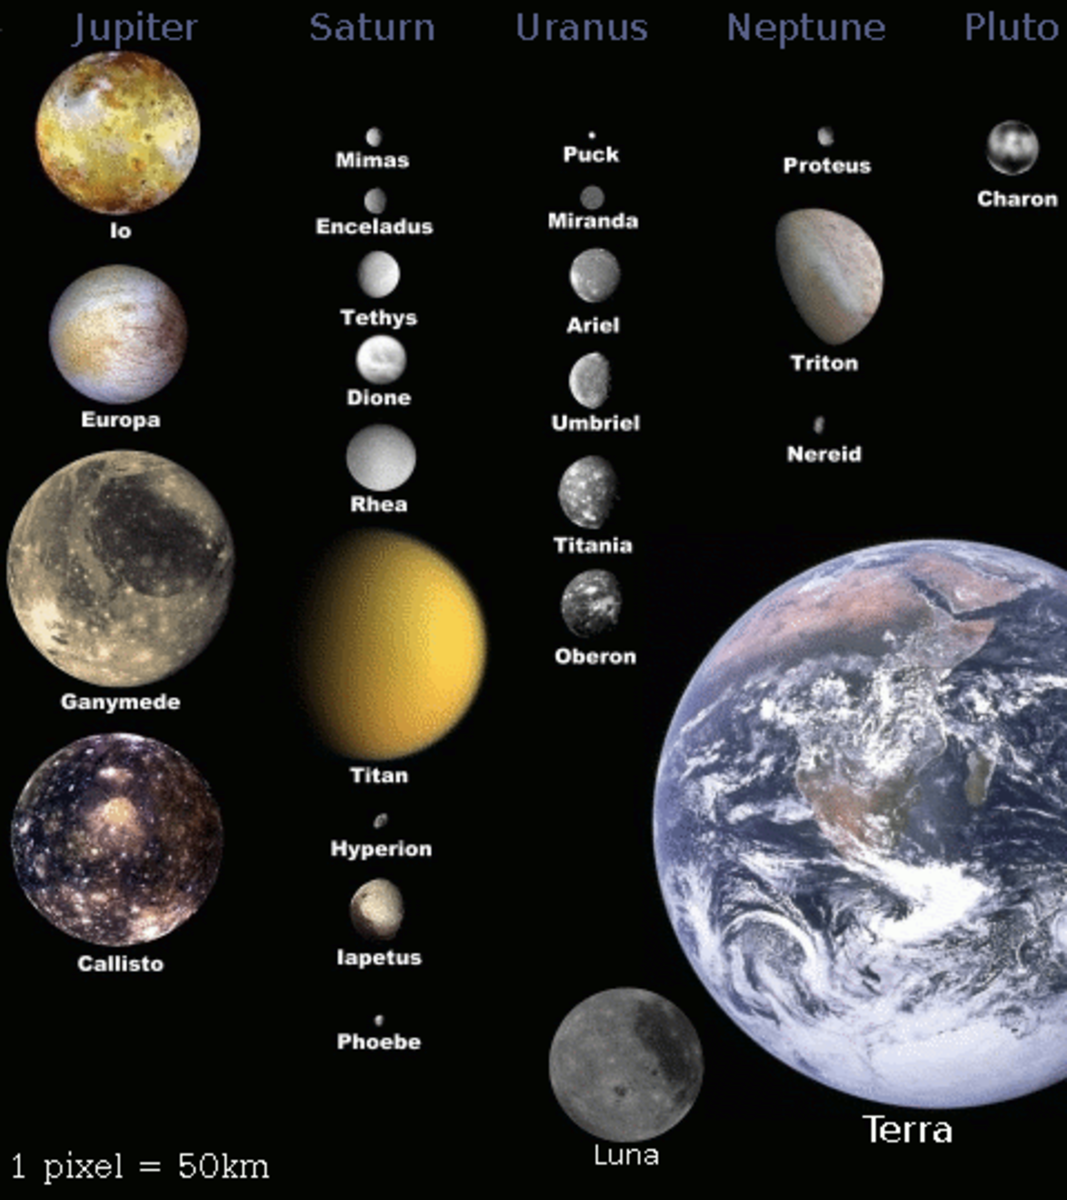 Size of the moons of the Solar System relative to Earth.